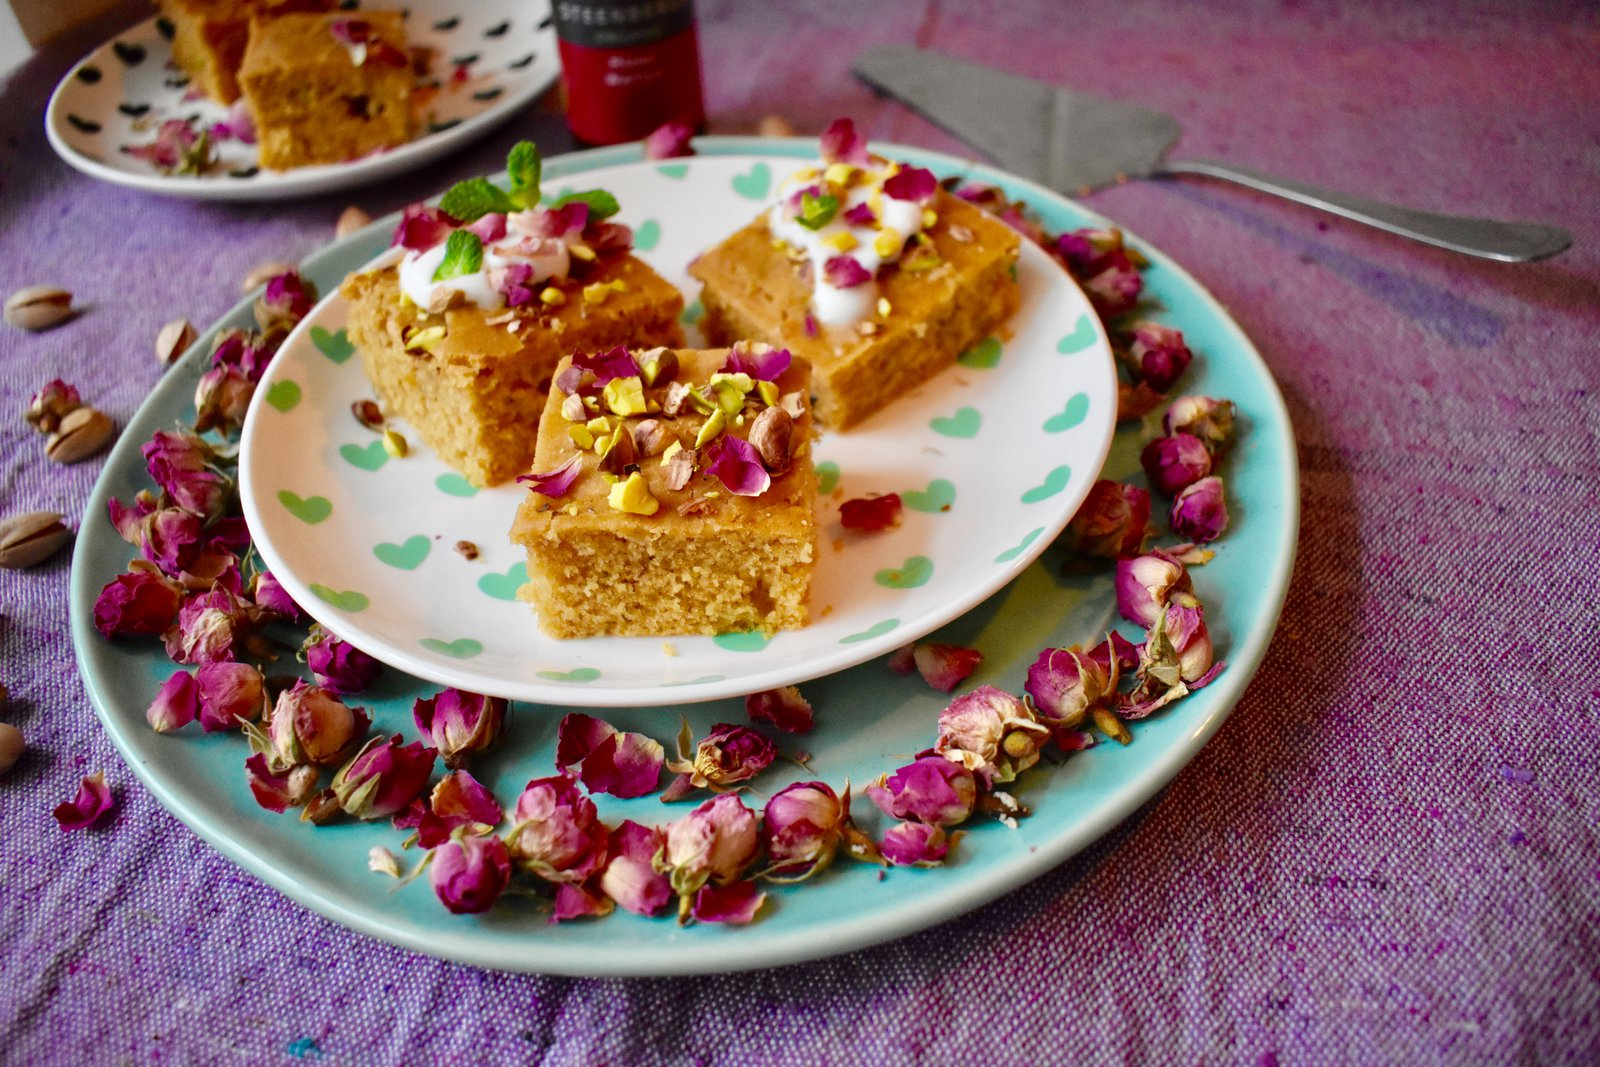 Yazdi squares are gluten free and dairy free, flavoured with organic rose water, ground cardamom and organic Fairtrade vanilla extract